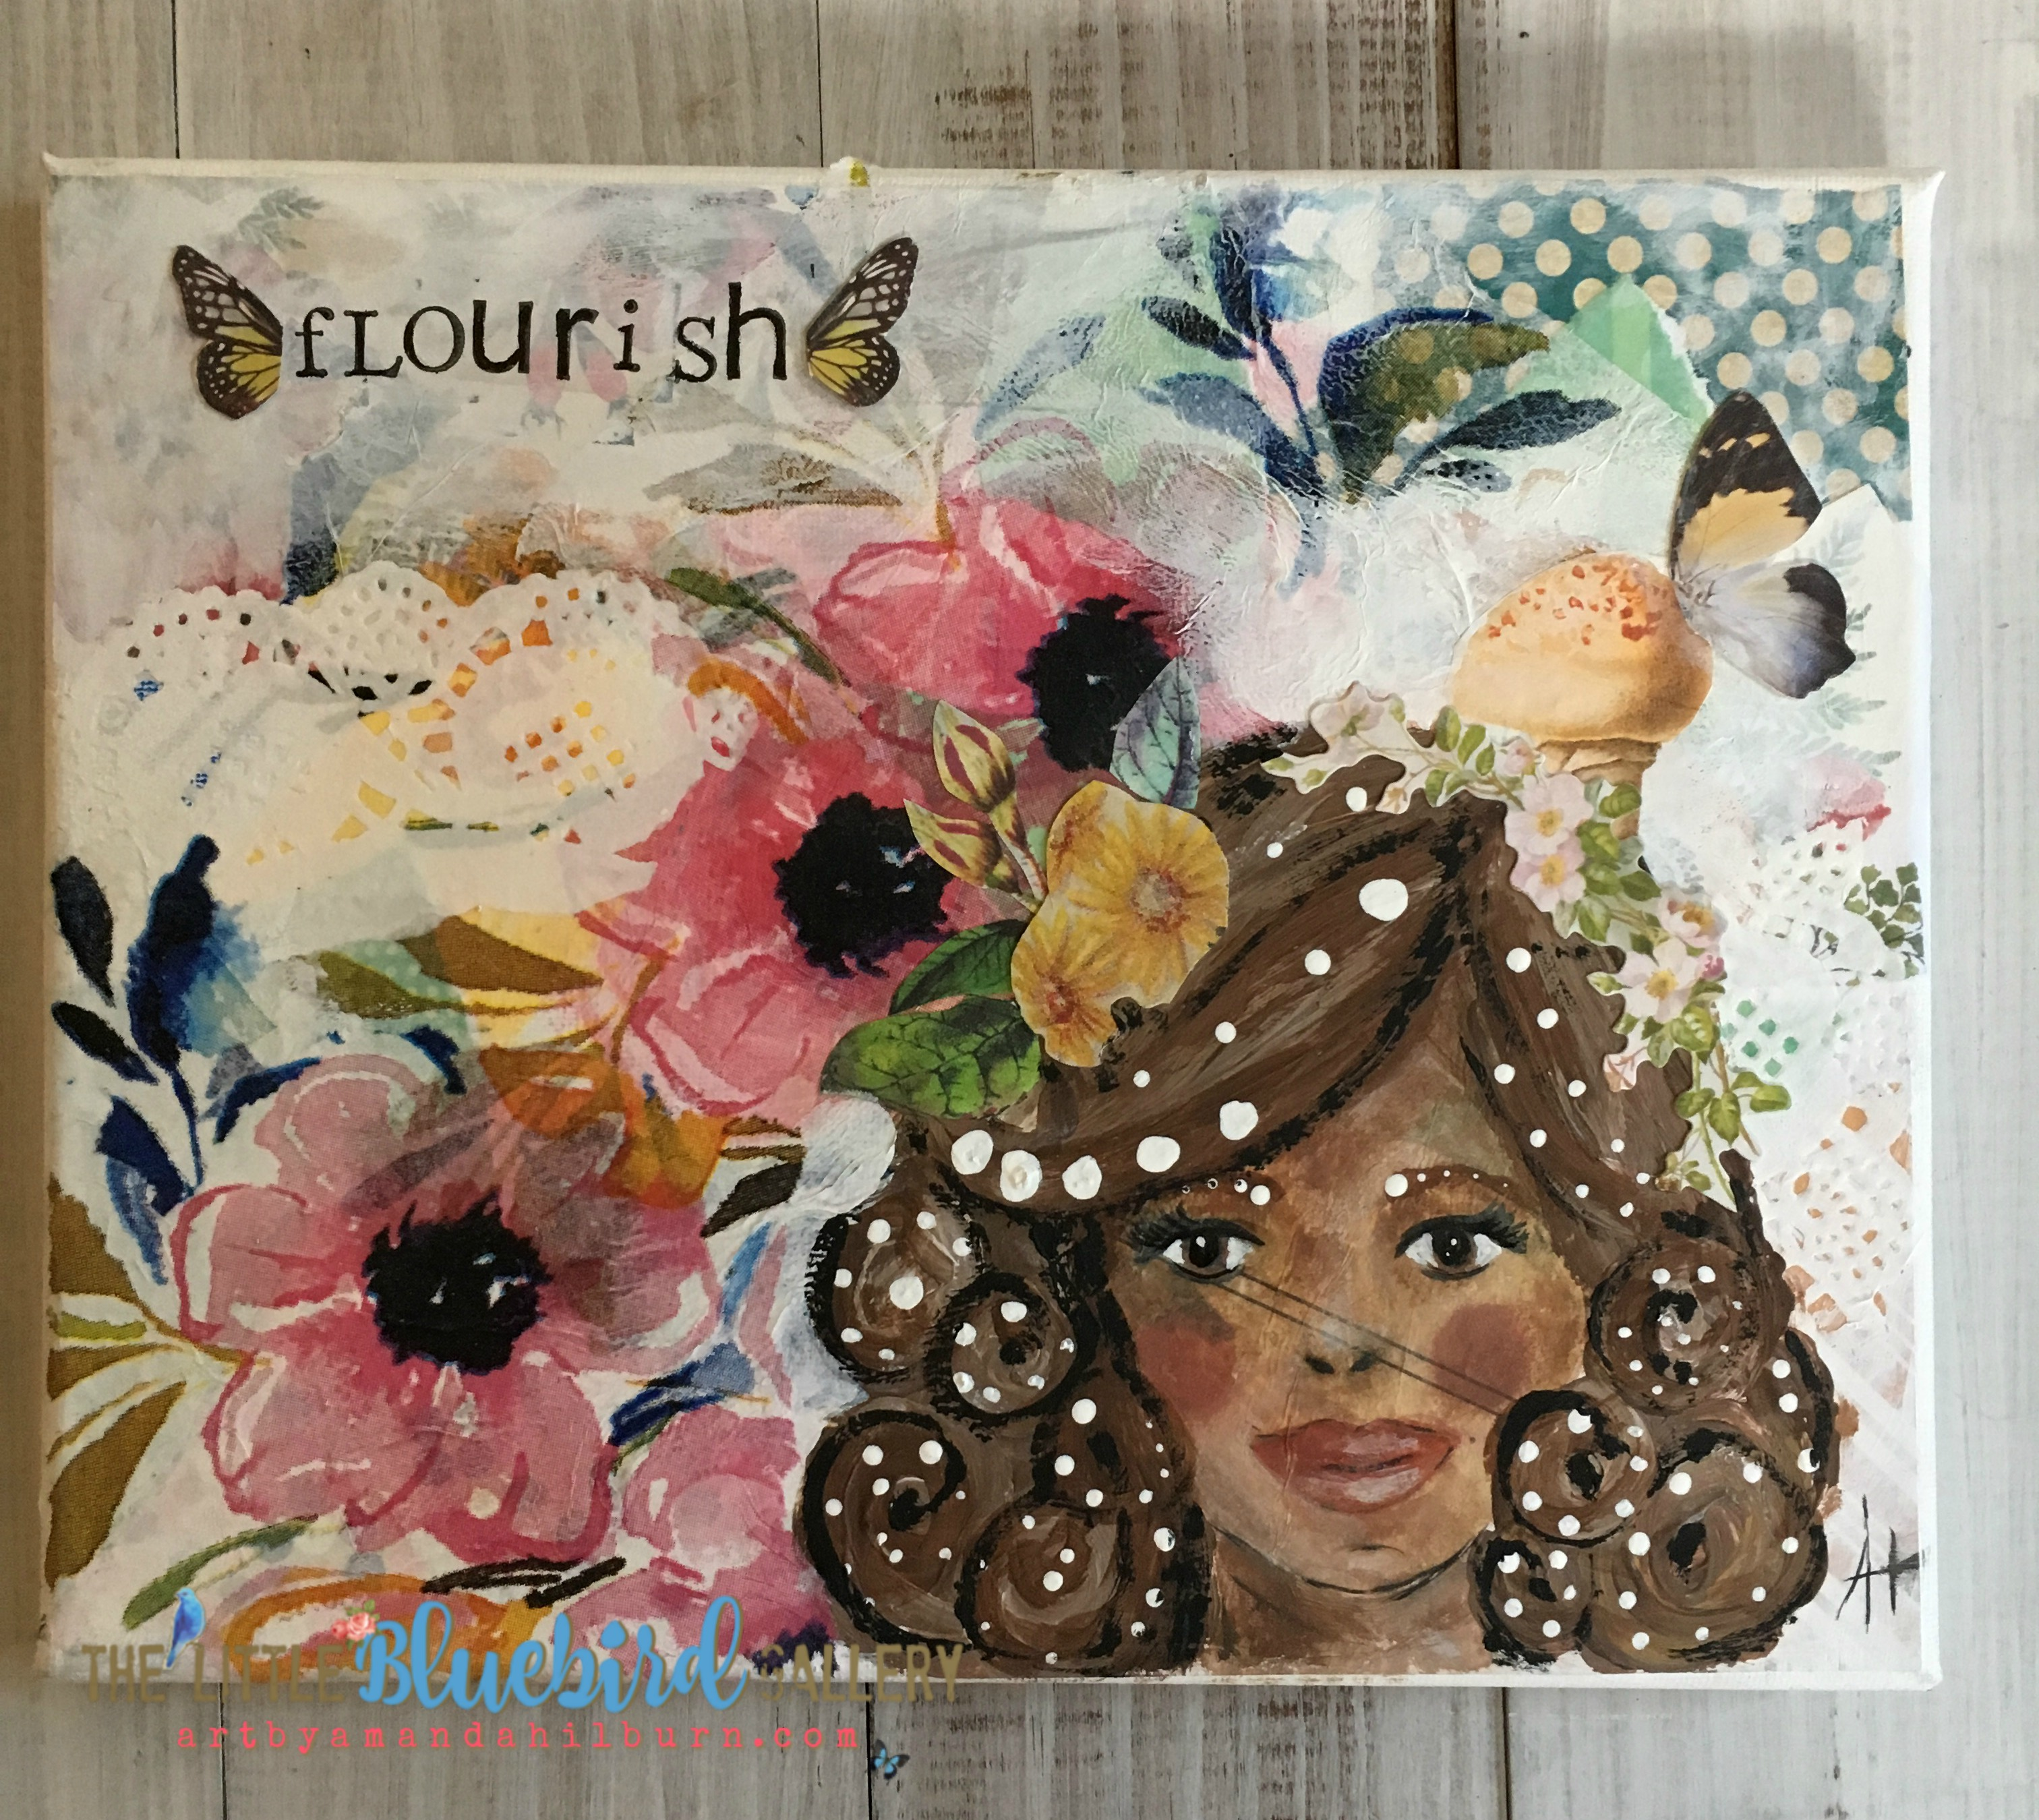 Flourish; Original Mixed Media Painting